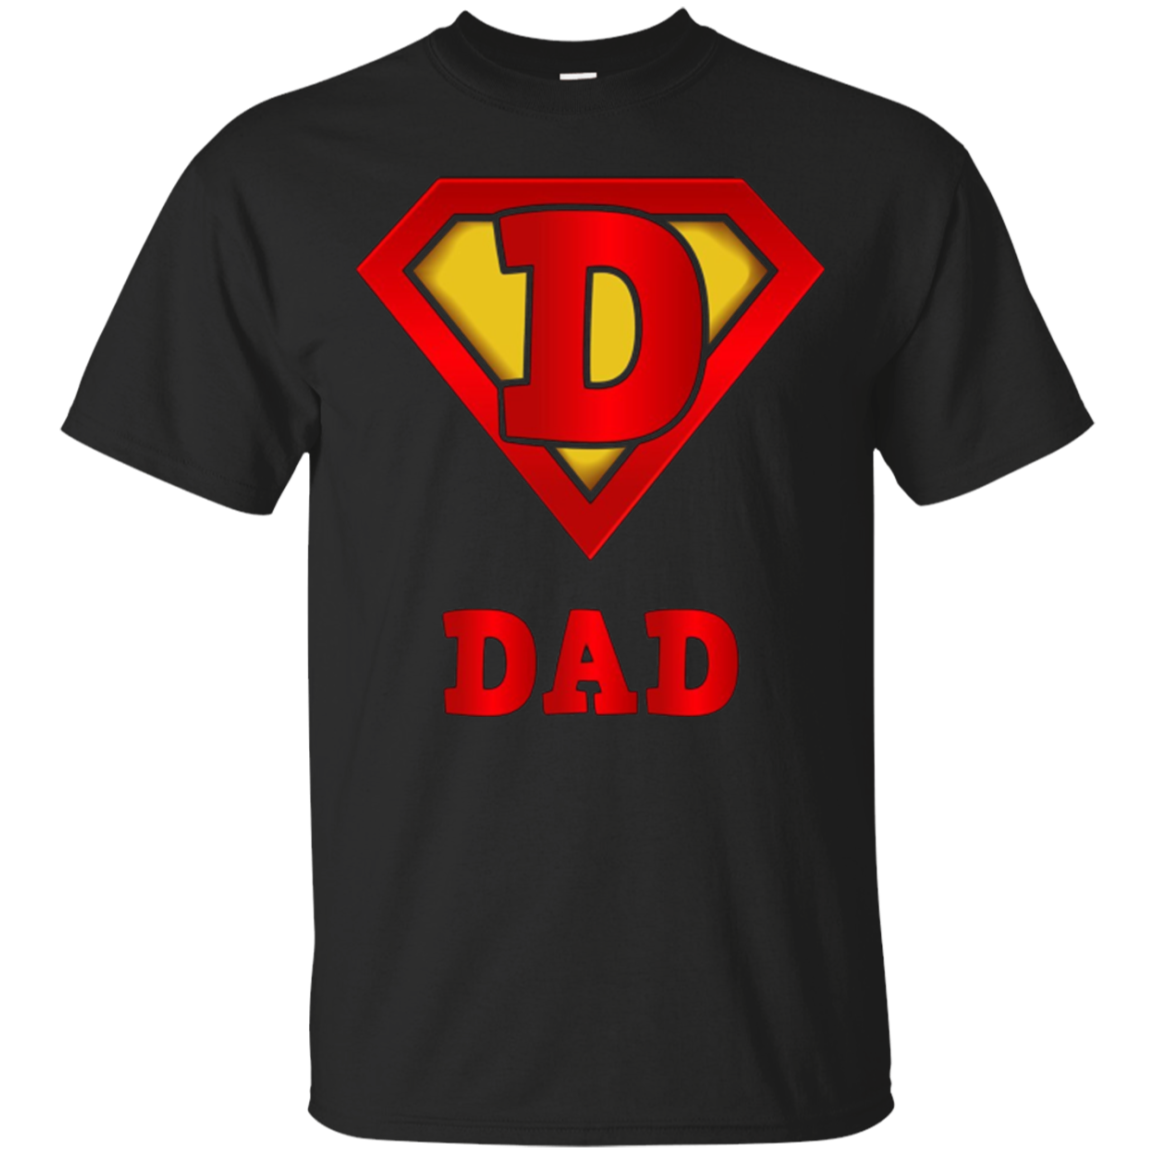 Mens Dad Superhero Shirt - Great gift